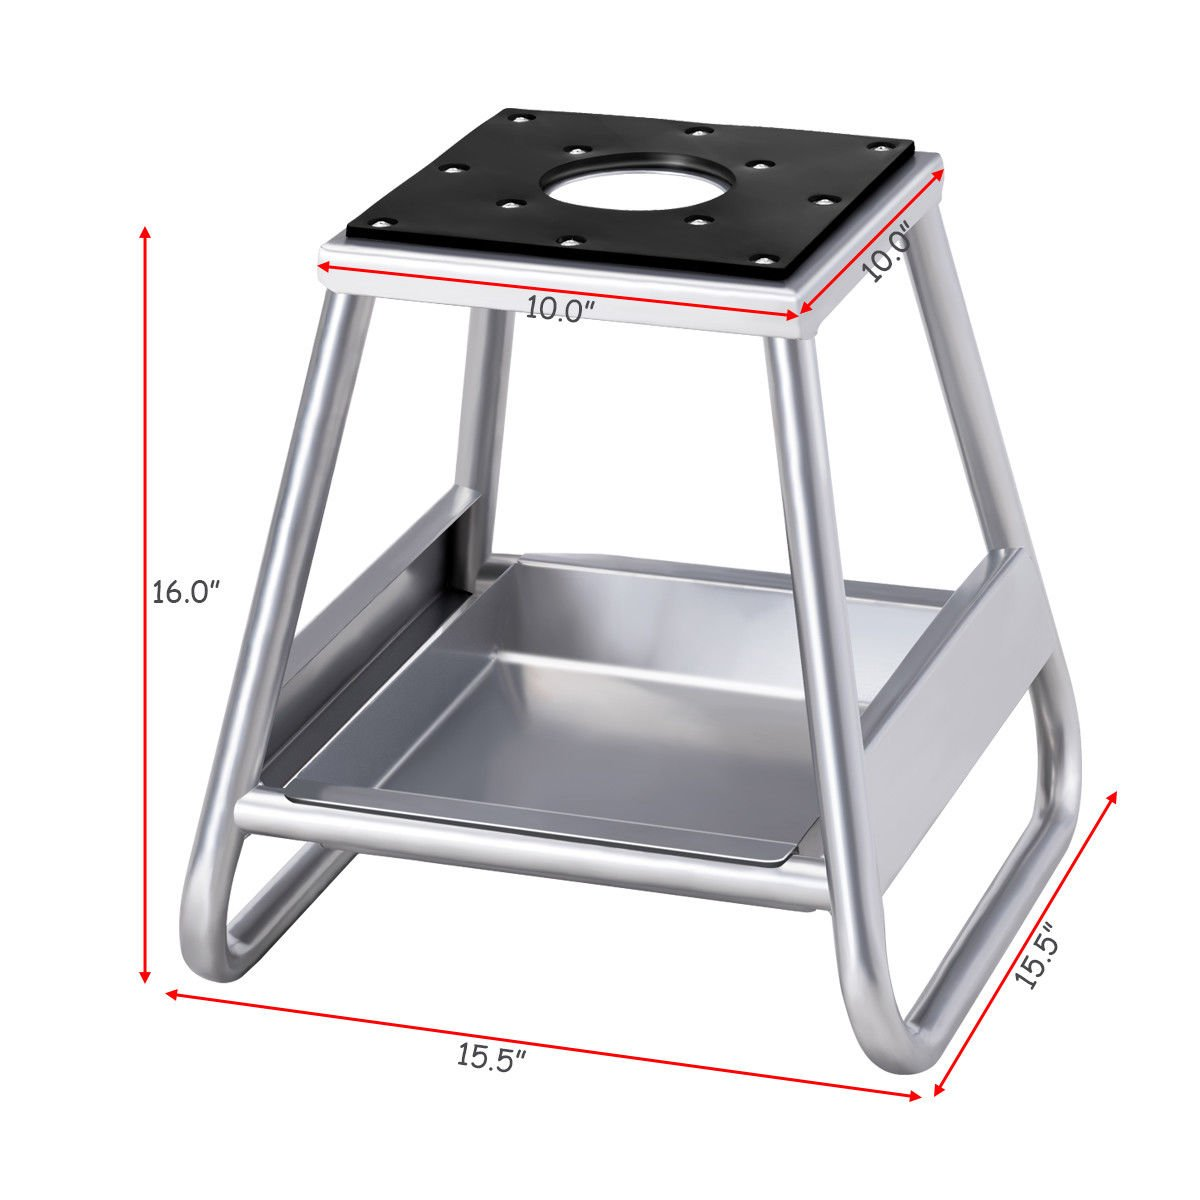 Goplus Motorcycle Motocross Dirt Bike Panel Stand Hoist Maintenance Lift Jack 1000LB Capacity (with Removable Oil Pan) by Goplus (Image #3)